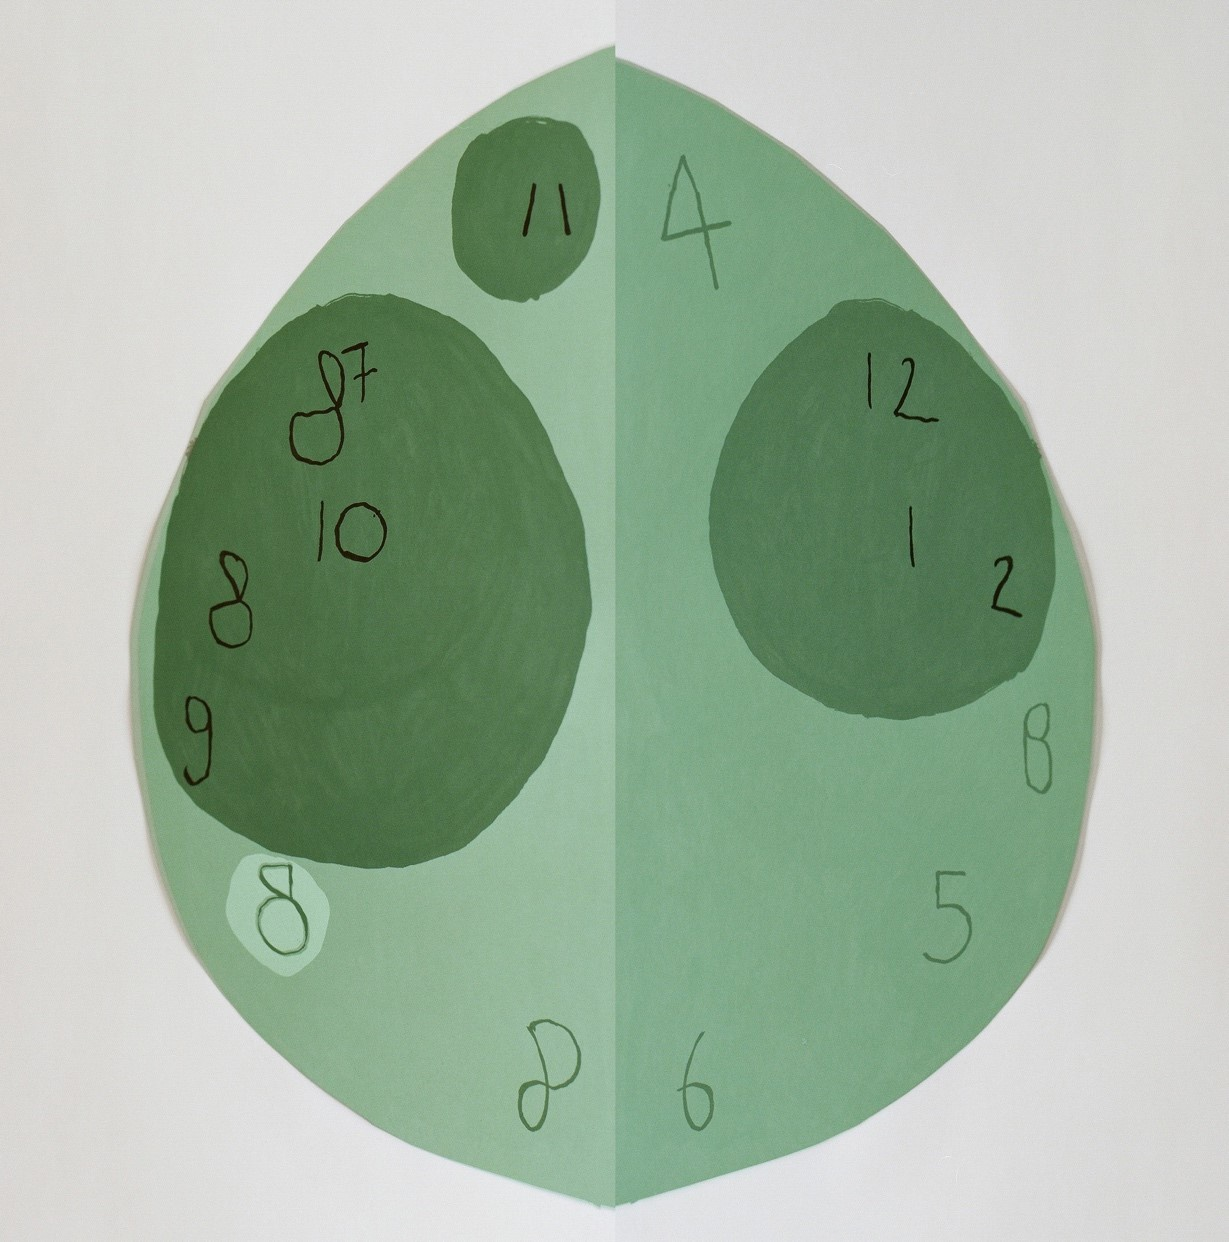 5/6 - Katja Mater, For the Time Being (02, green) (2020).